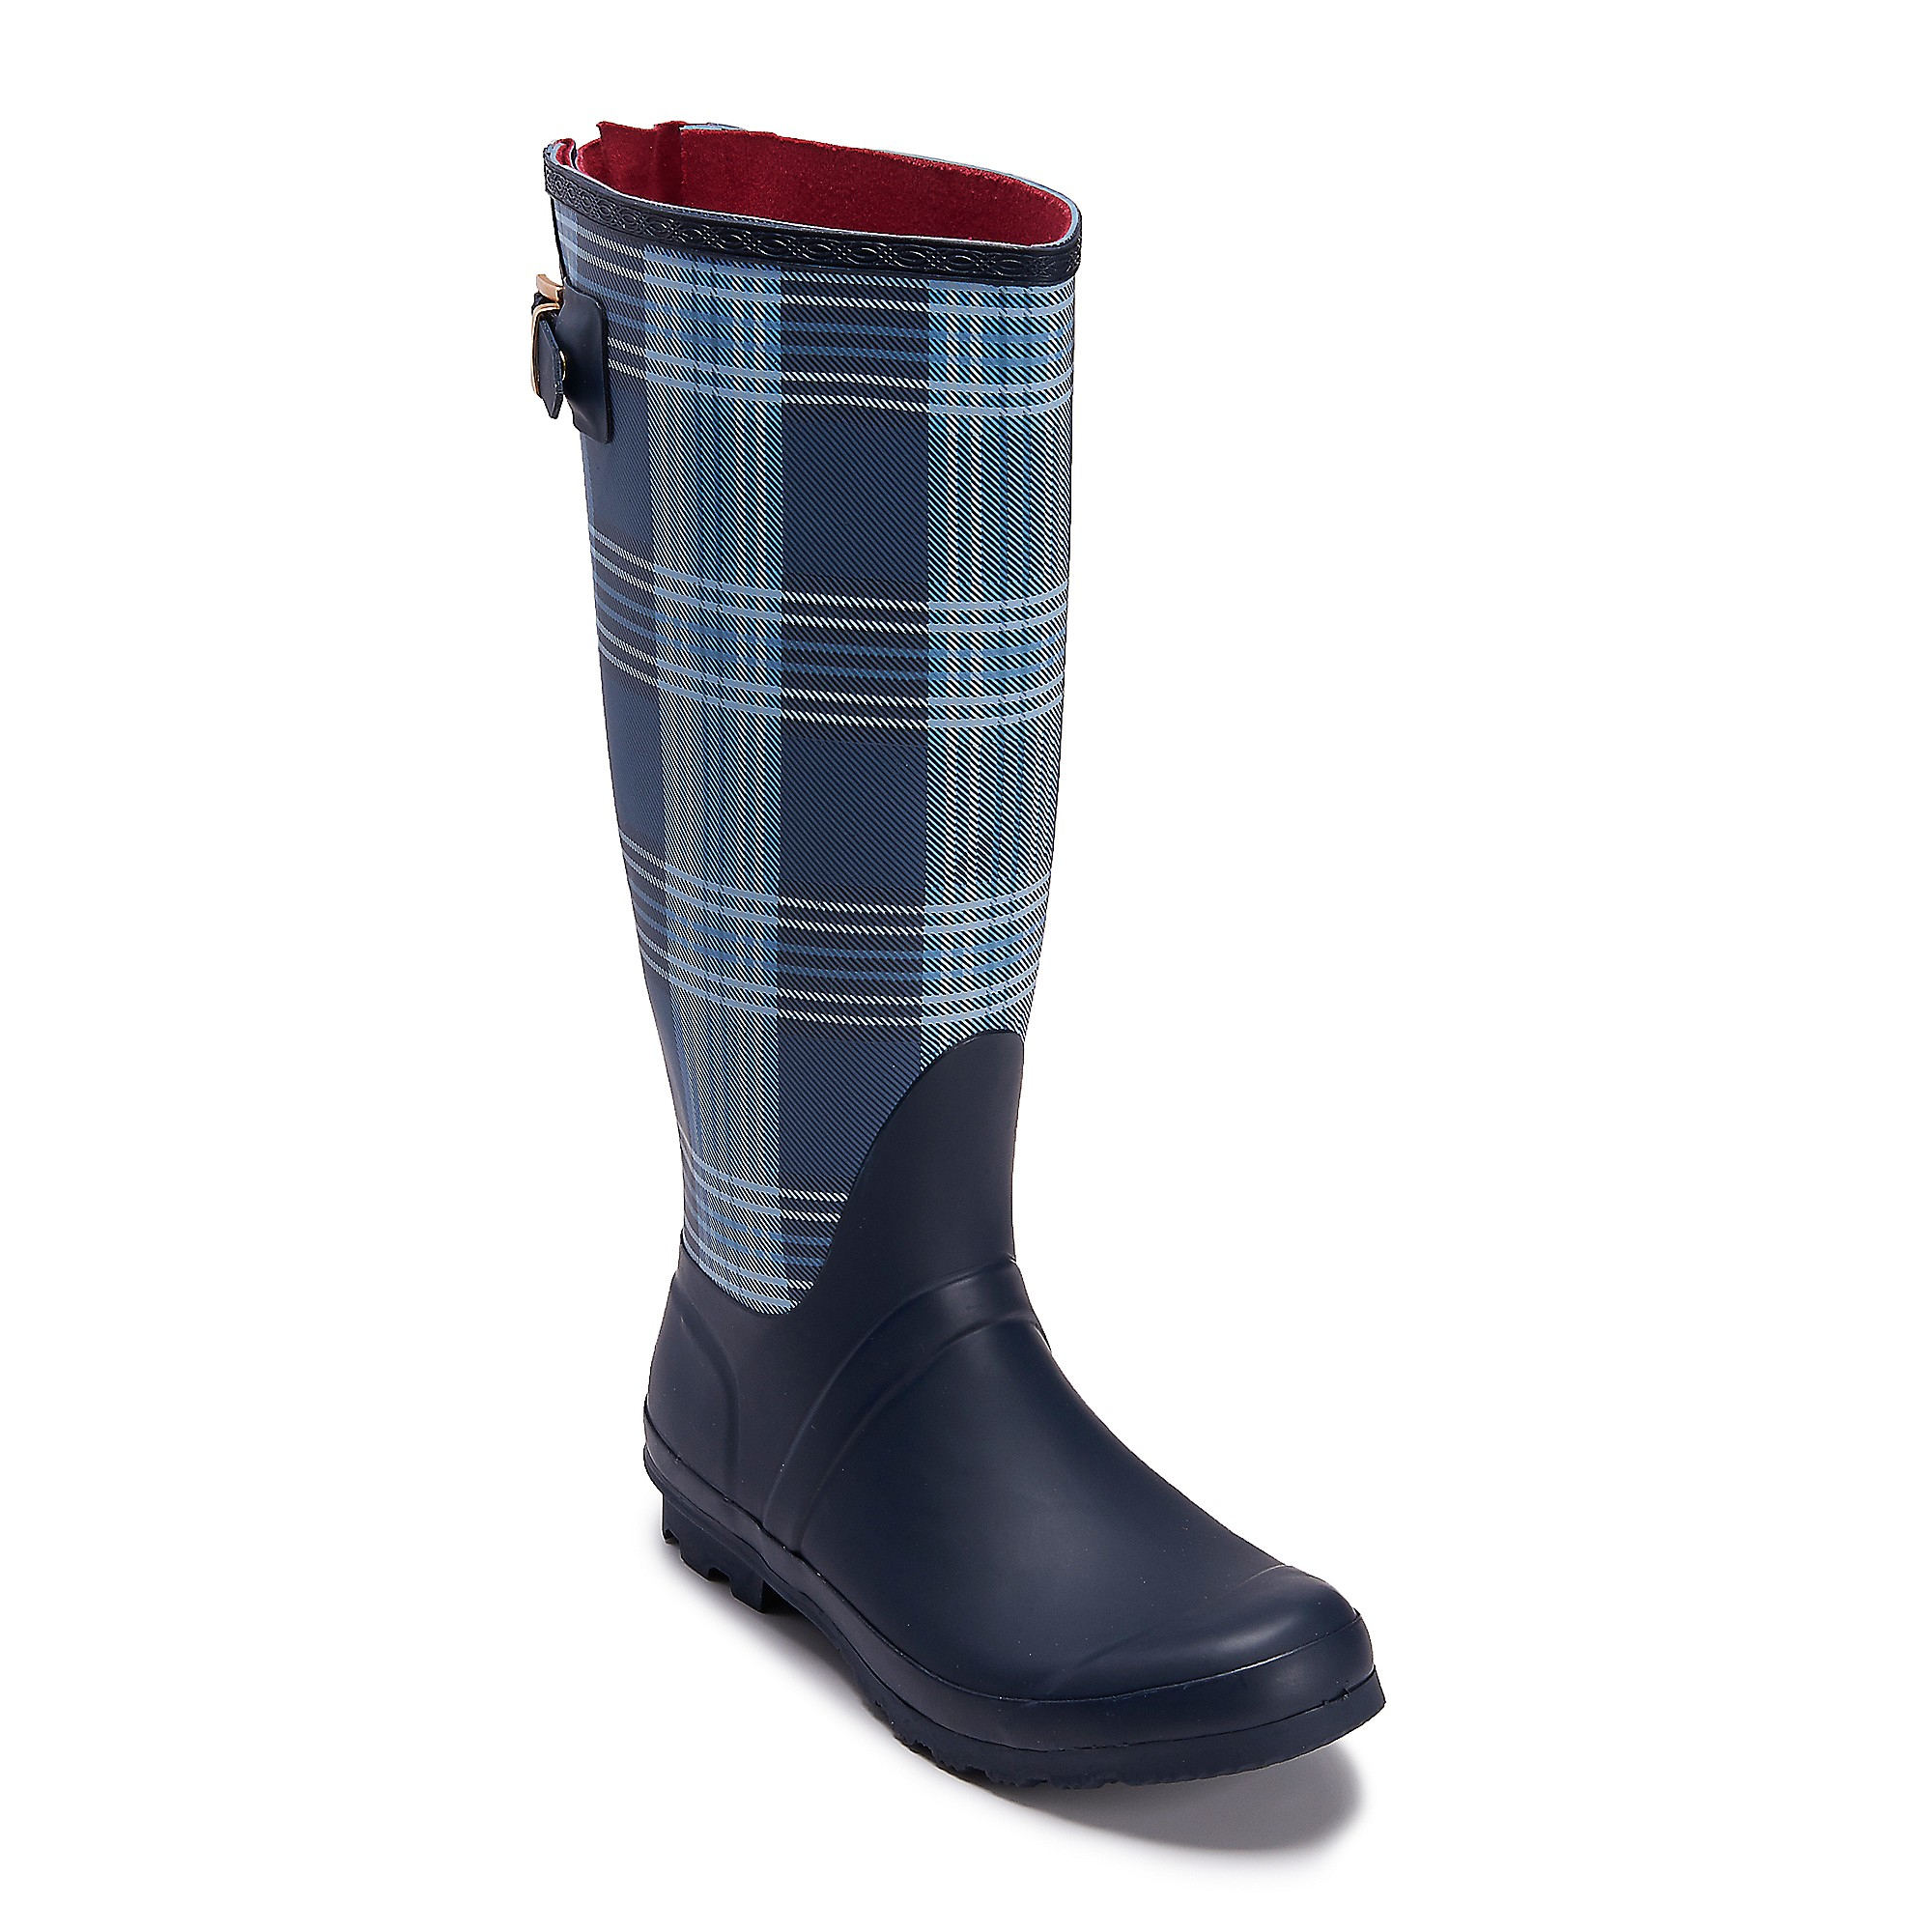 Popular Make A Rainy Day Fashion Statement In The Coree Rain Boot From Tommy  Leather Flats For Women And Casual Oxfords For Men, And His Fashion Sneakers To Play Tennis In Miami At Shoemagoo We Have An Extensive Collection Of Tommy